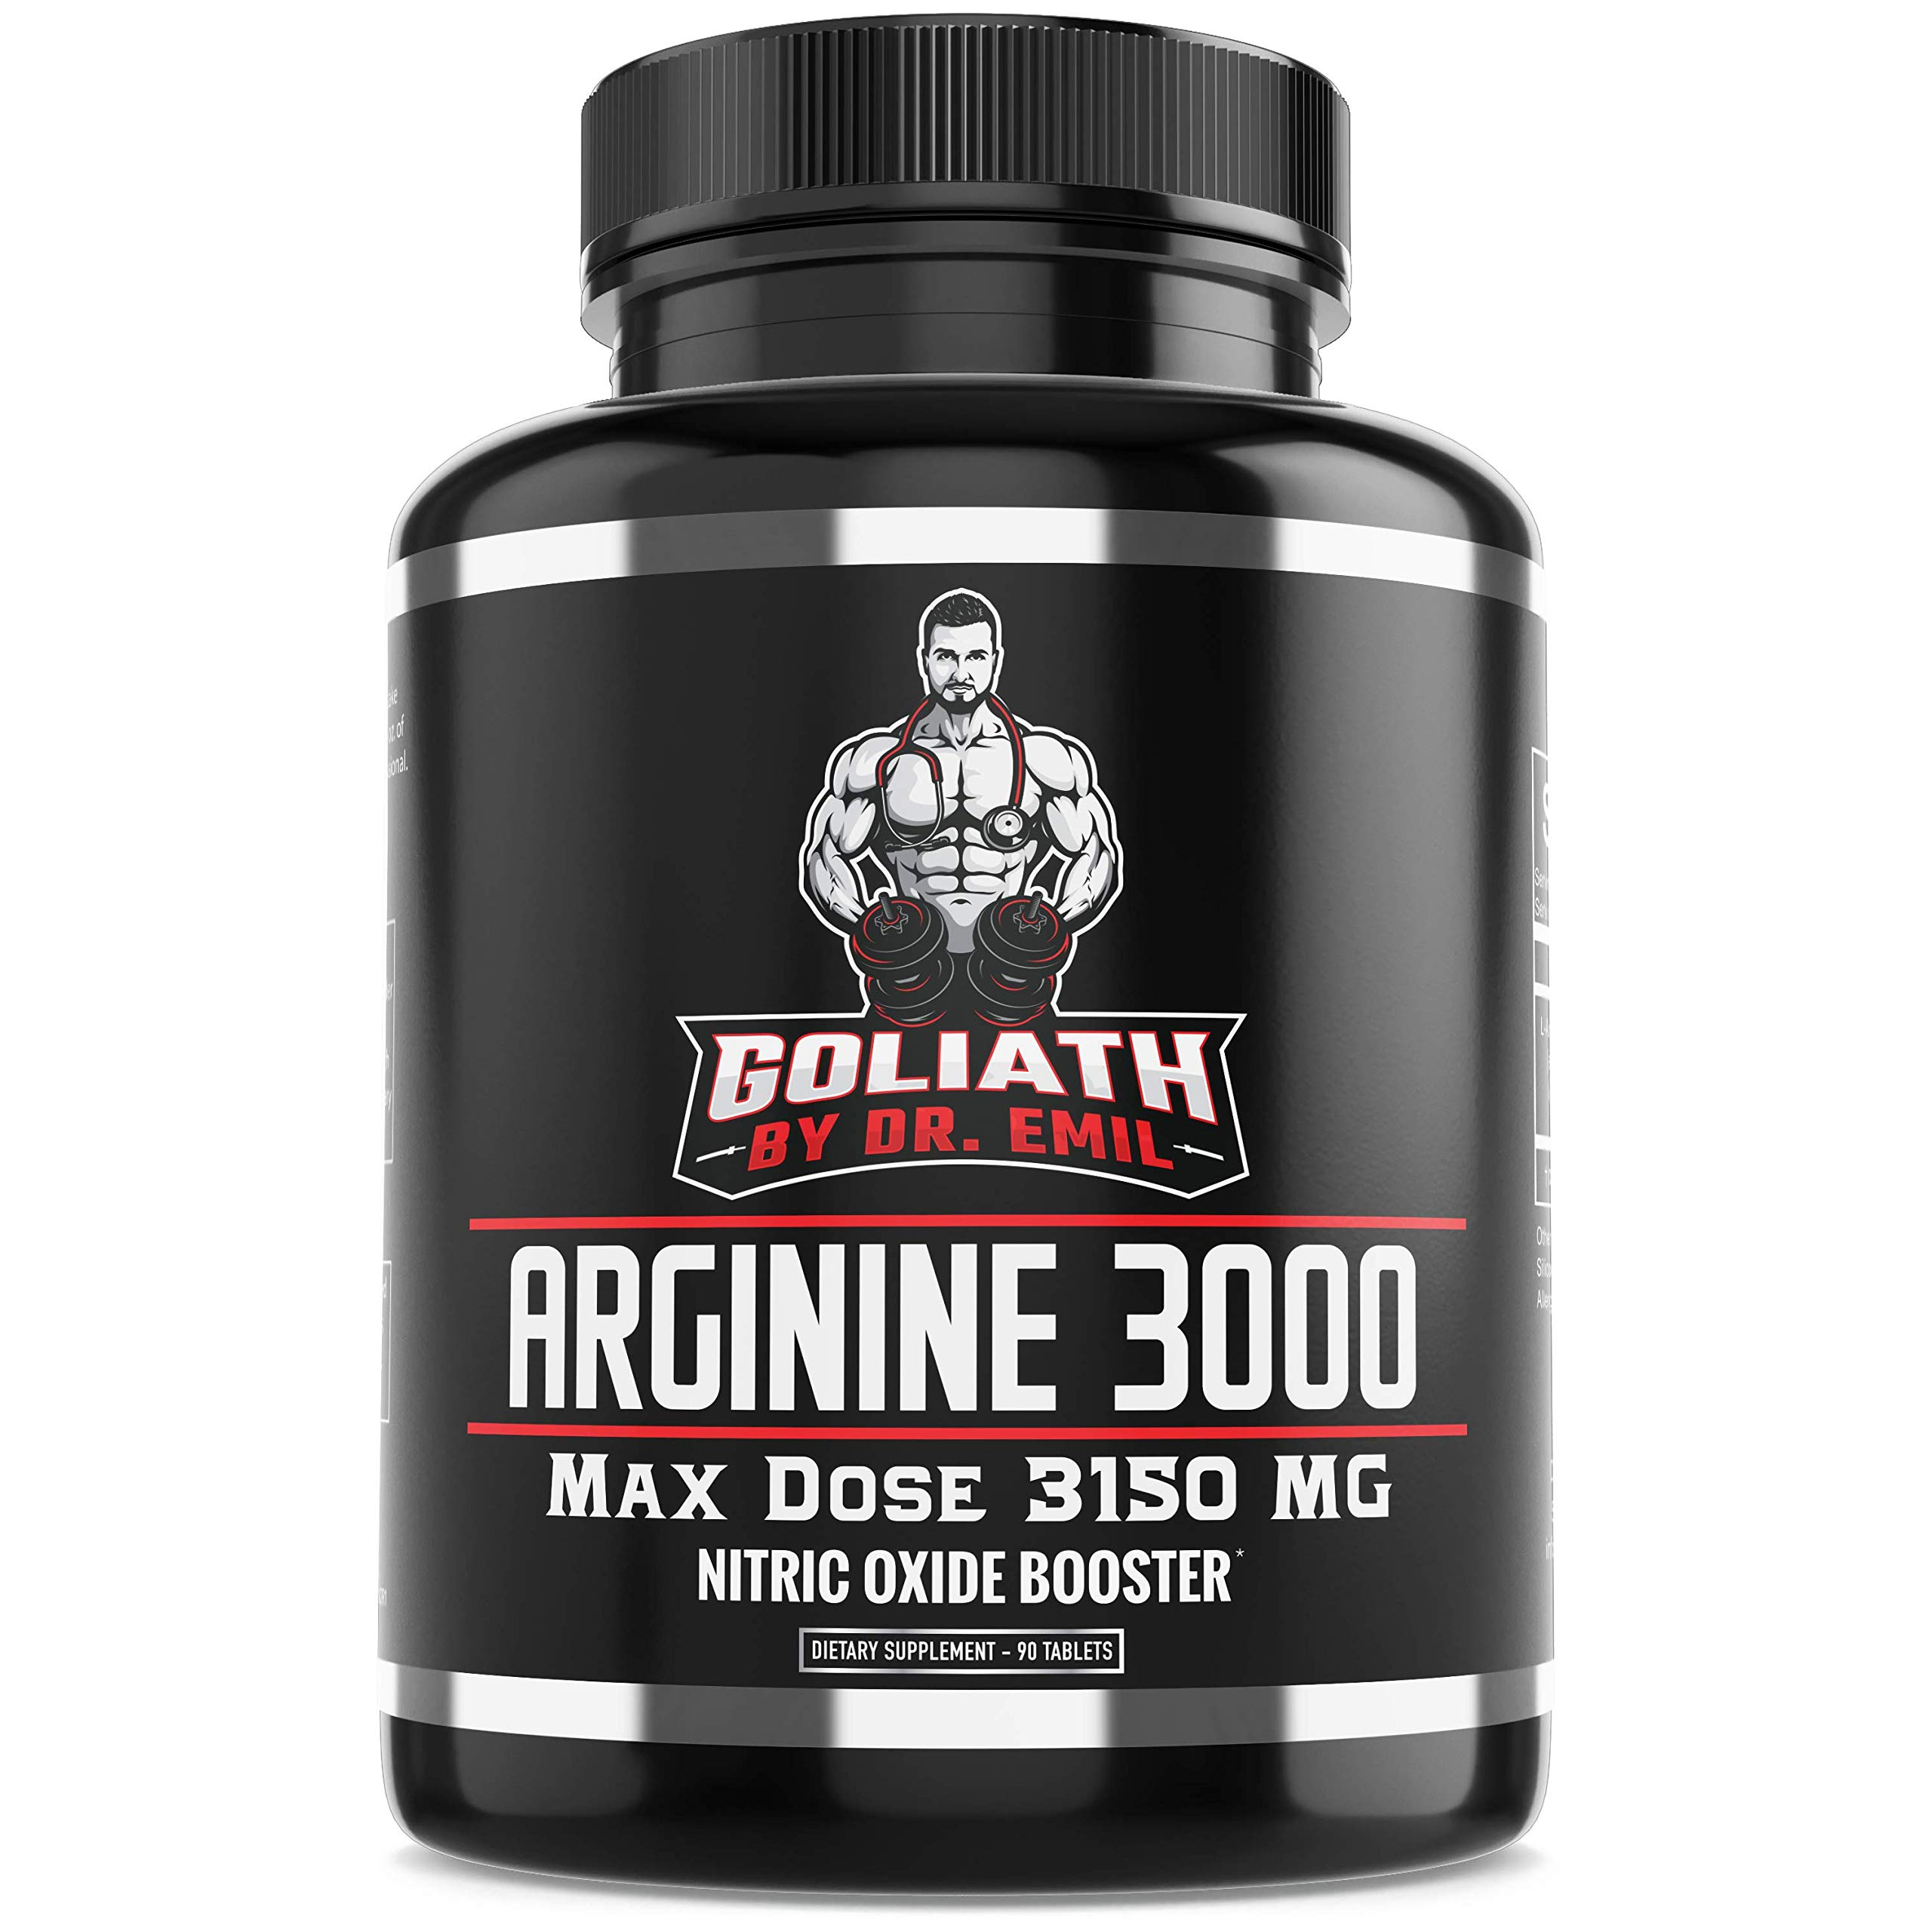 Dr. Emil - L Arginine (3150mg) Highest Capsule Dose - Nitric Oxide Supplement for Muscle Growth, Vascularity, Endurance and Heart Health (AAKG and HCL) - 90 Tablets by DR EMIL NUTRITION